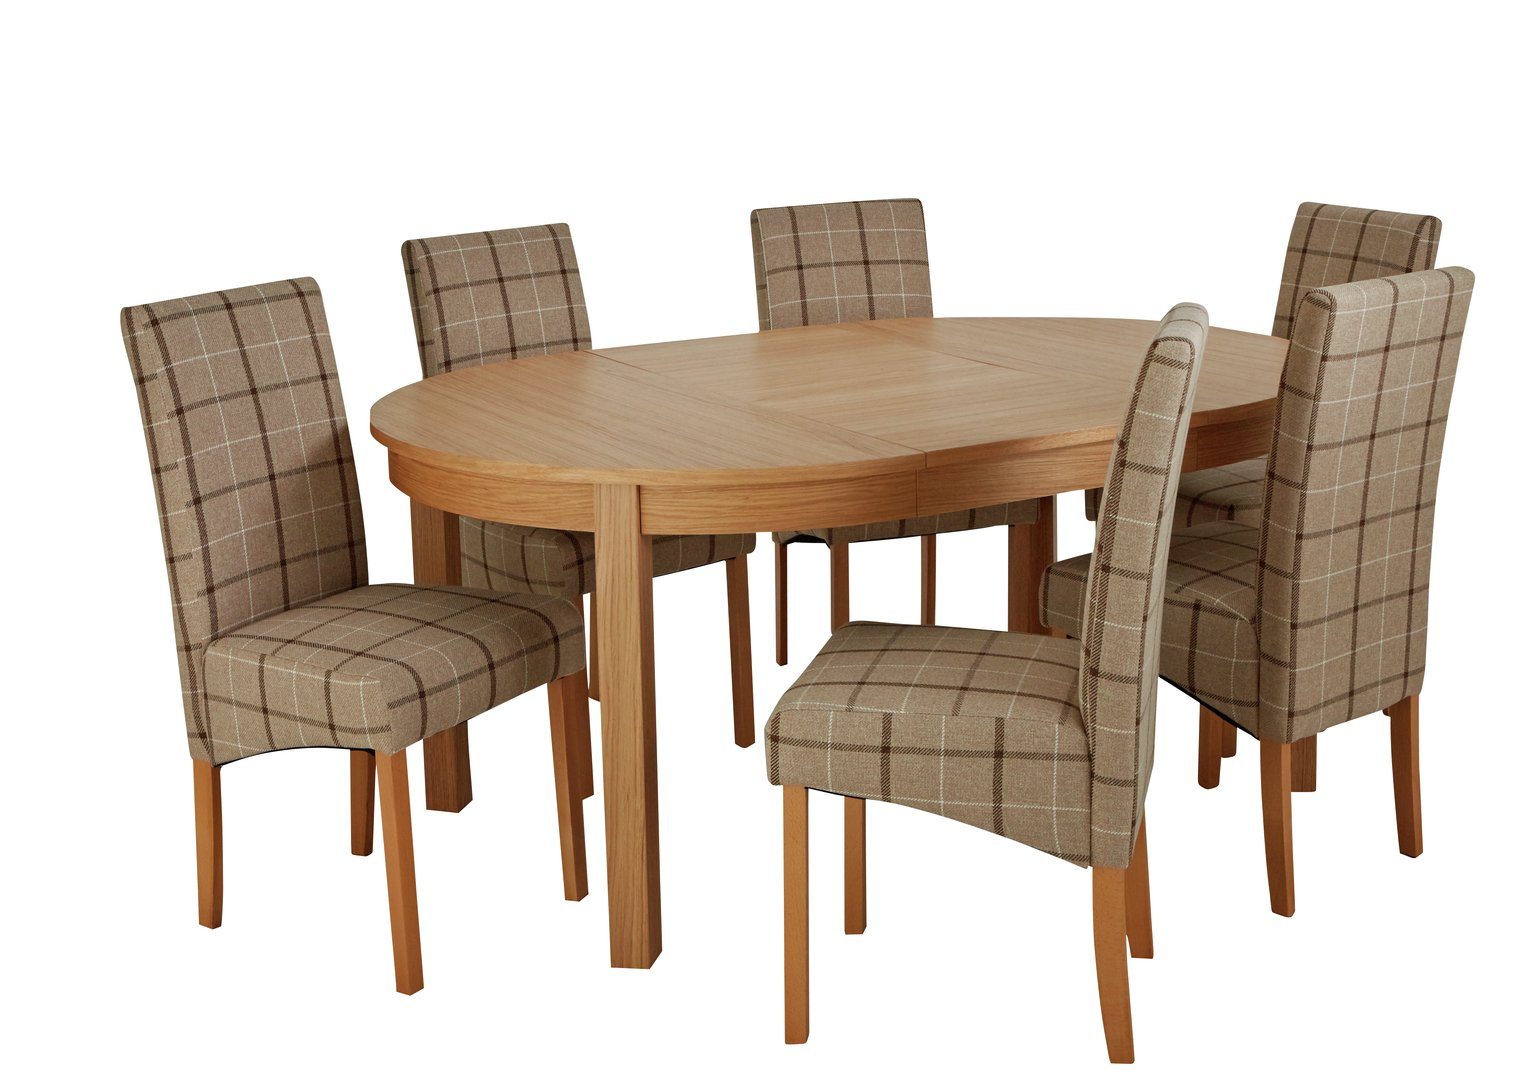 Argos Home Clifton Extendable Table & 6 Chairs - Mink Check from Argos Home